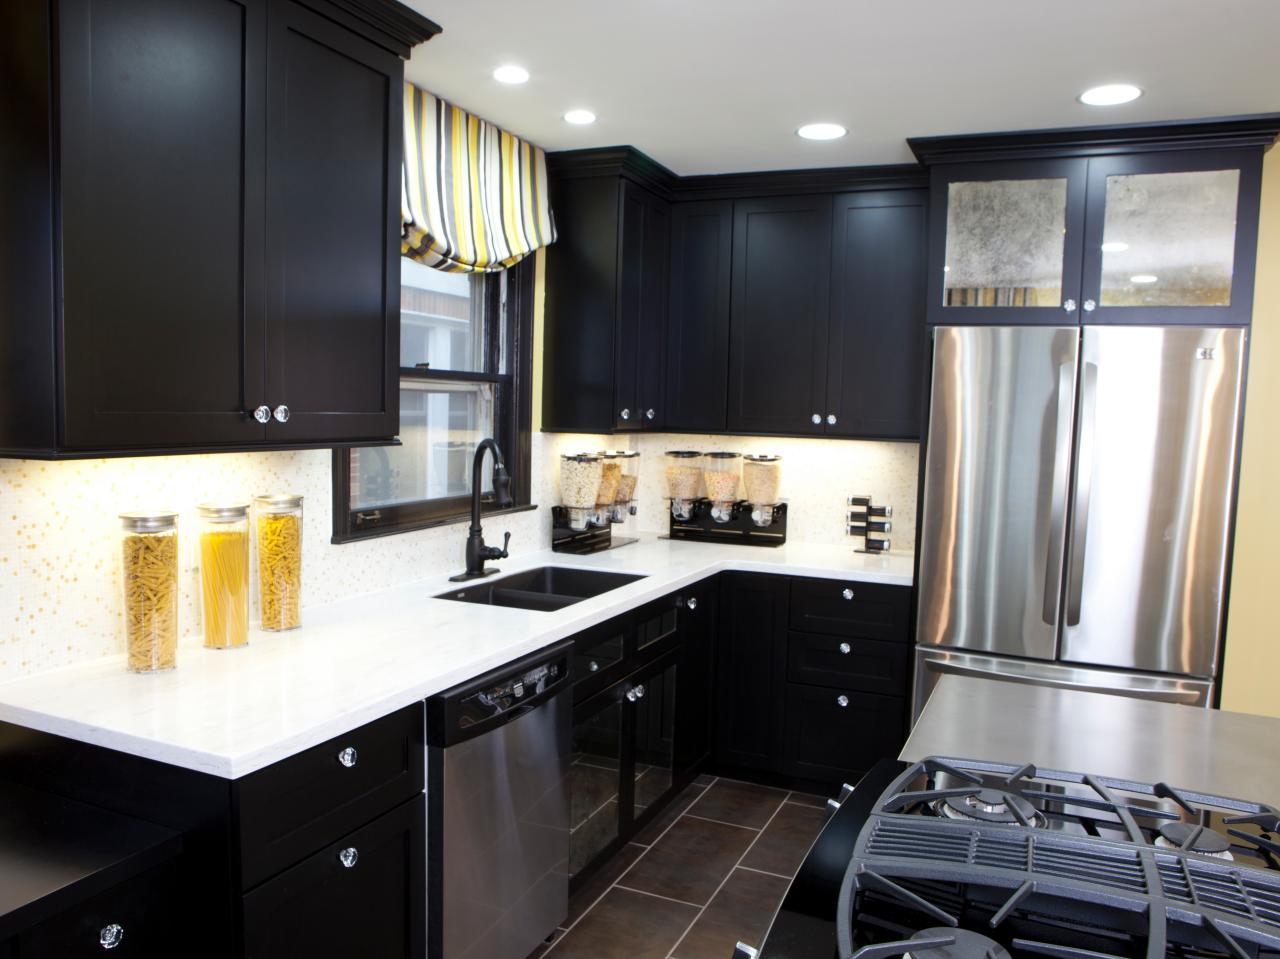 pictures of kitchens with black cabinets home furniture design. Black Bedroom Furniture Sets. Home Design Ideas